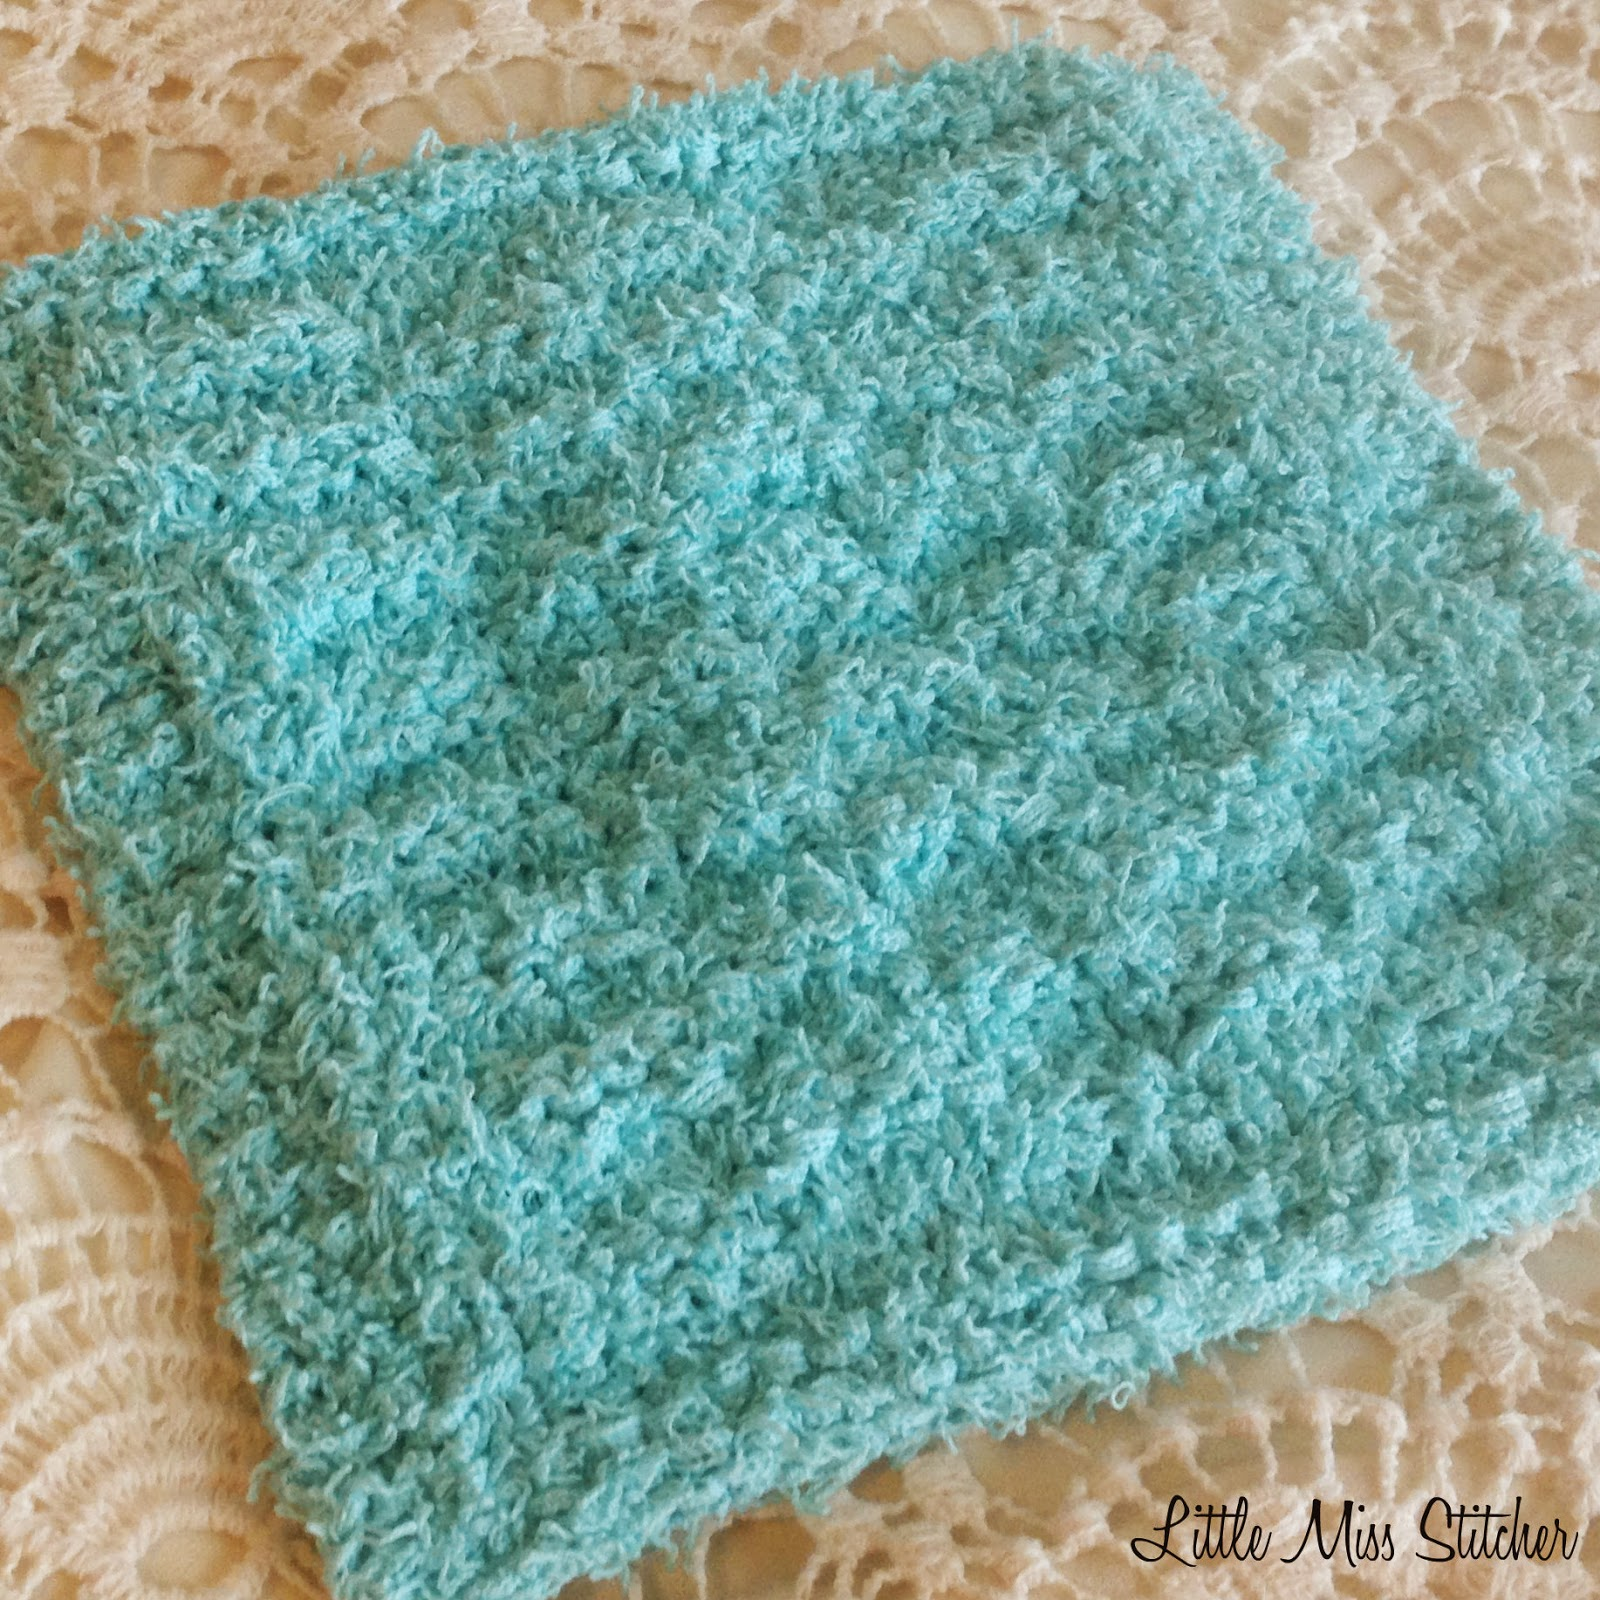 Simple Dishcloth Knitting Pattern : Little Miss Stitcher: 5 Free Knit Dishcloth Patterns